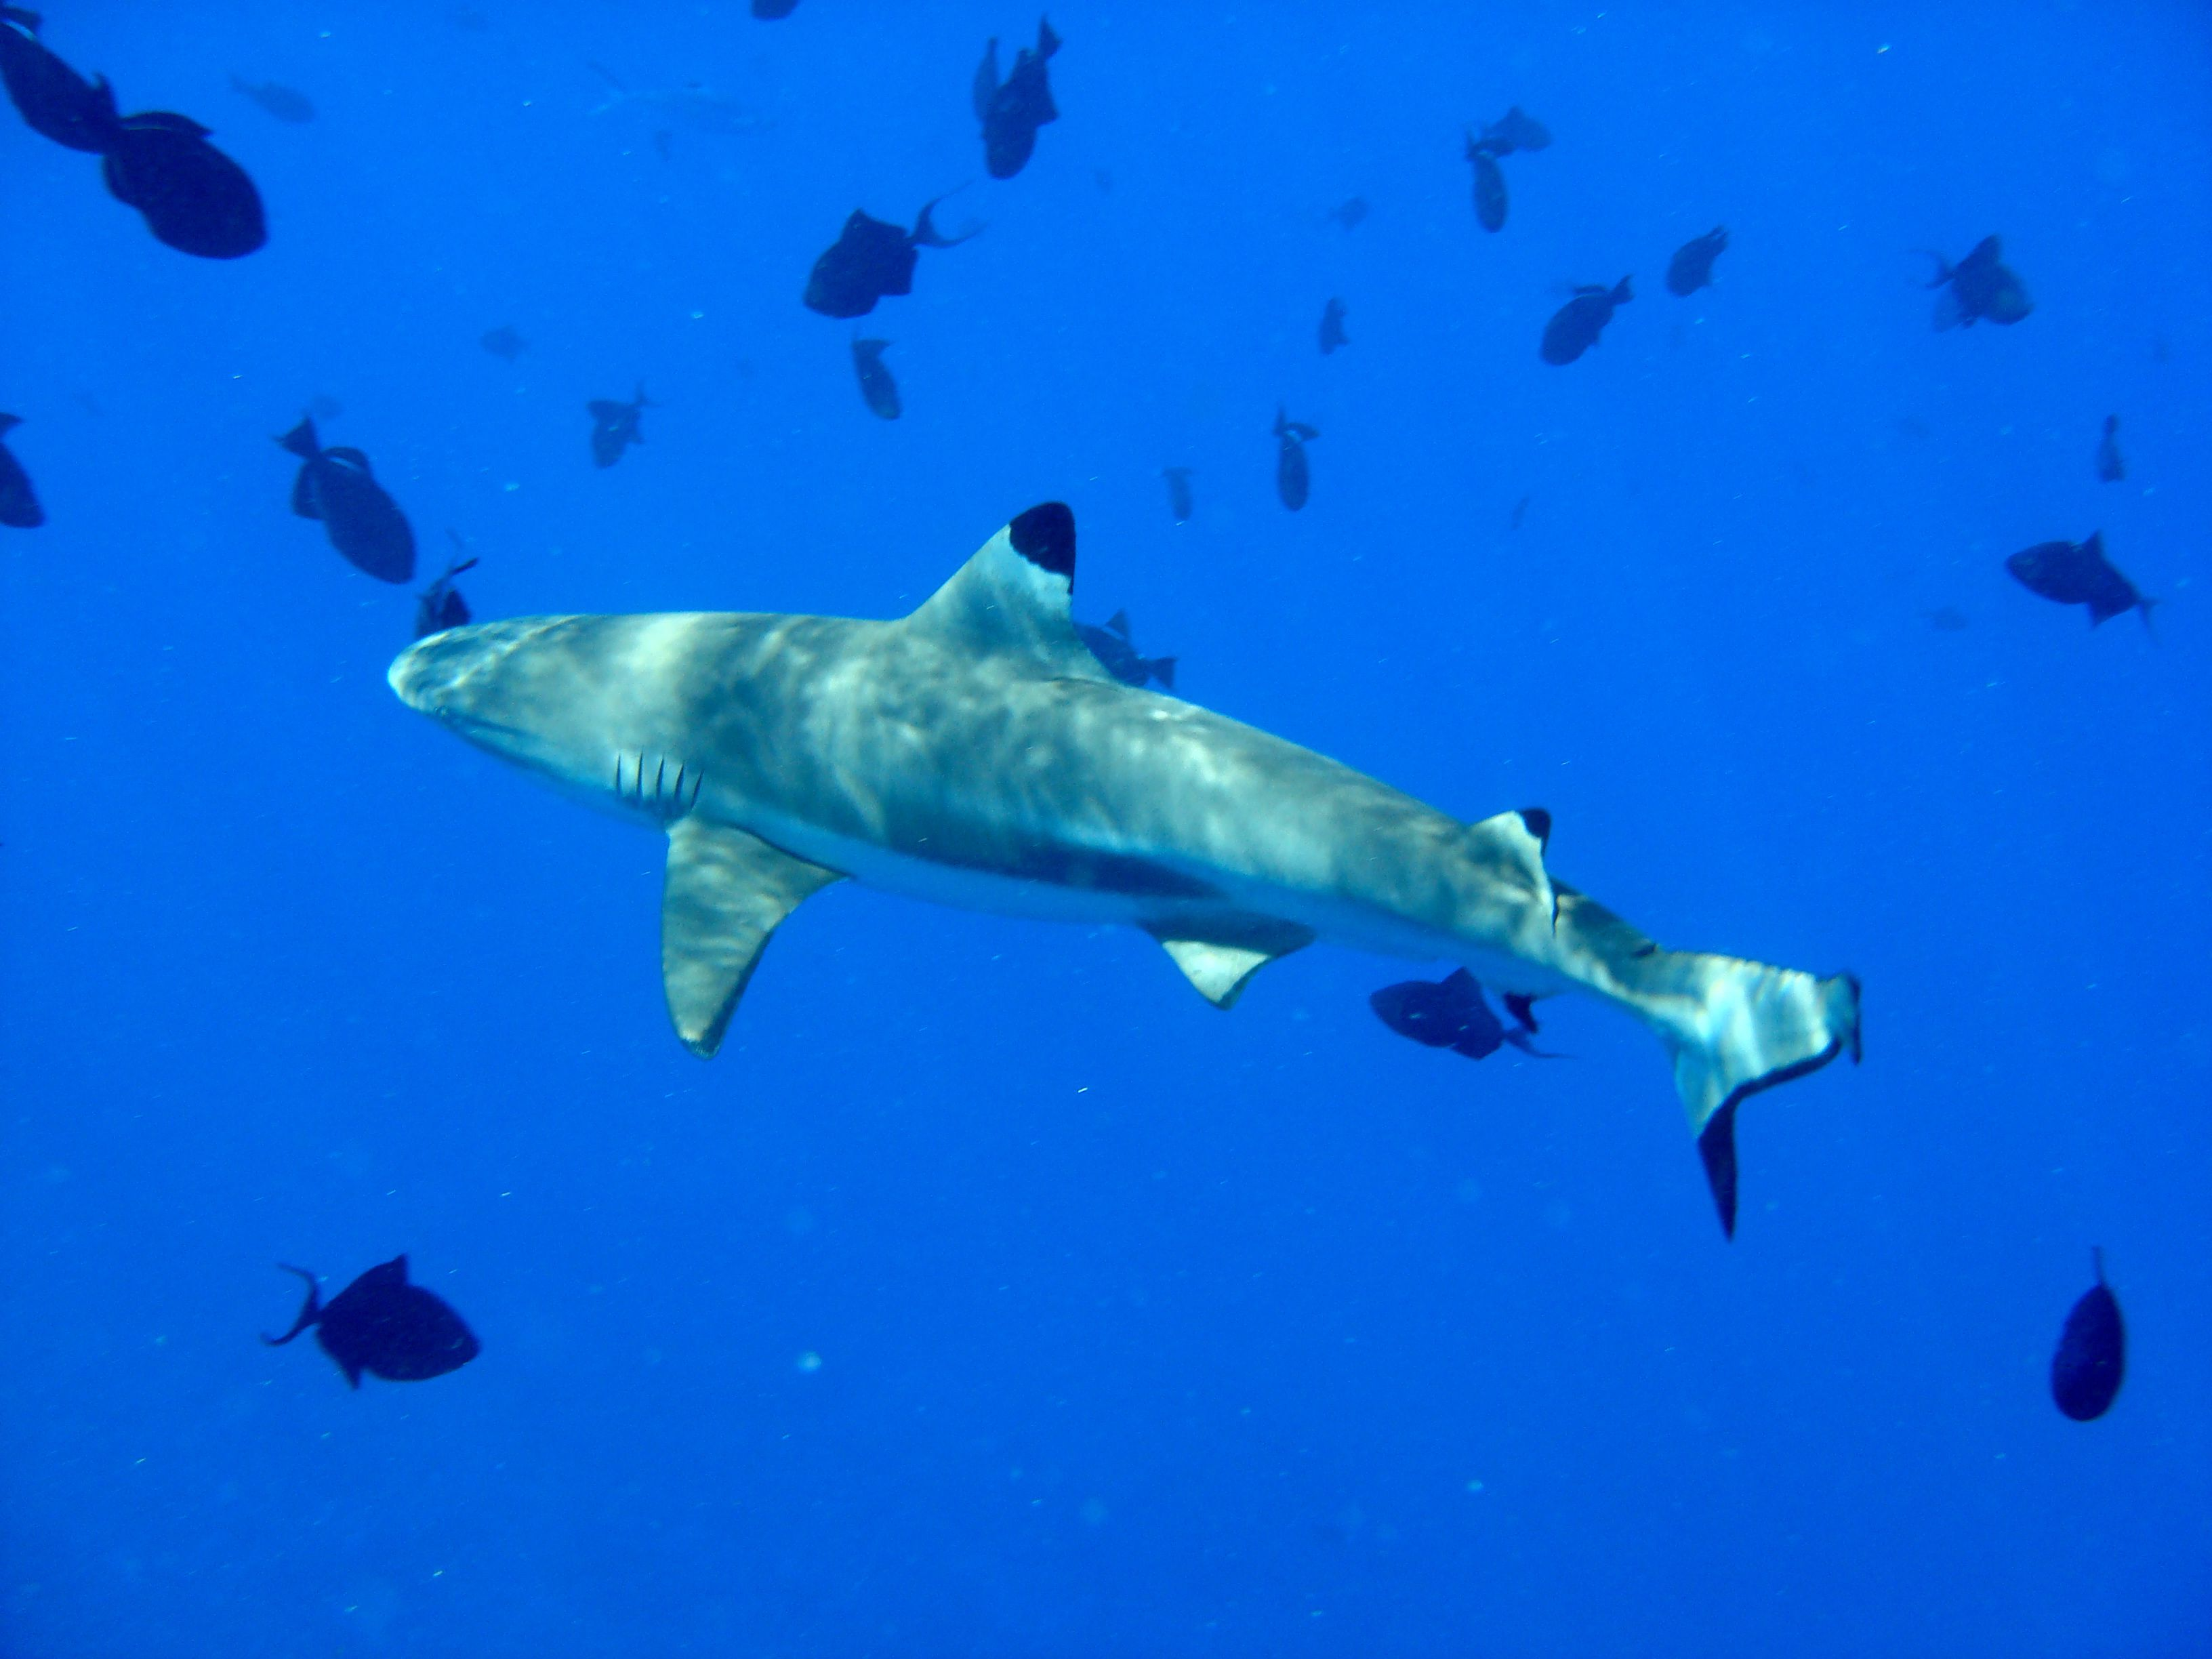 Grey reef shark has elongated body, rounded snout and large eyes.